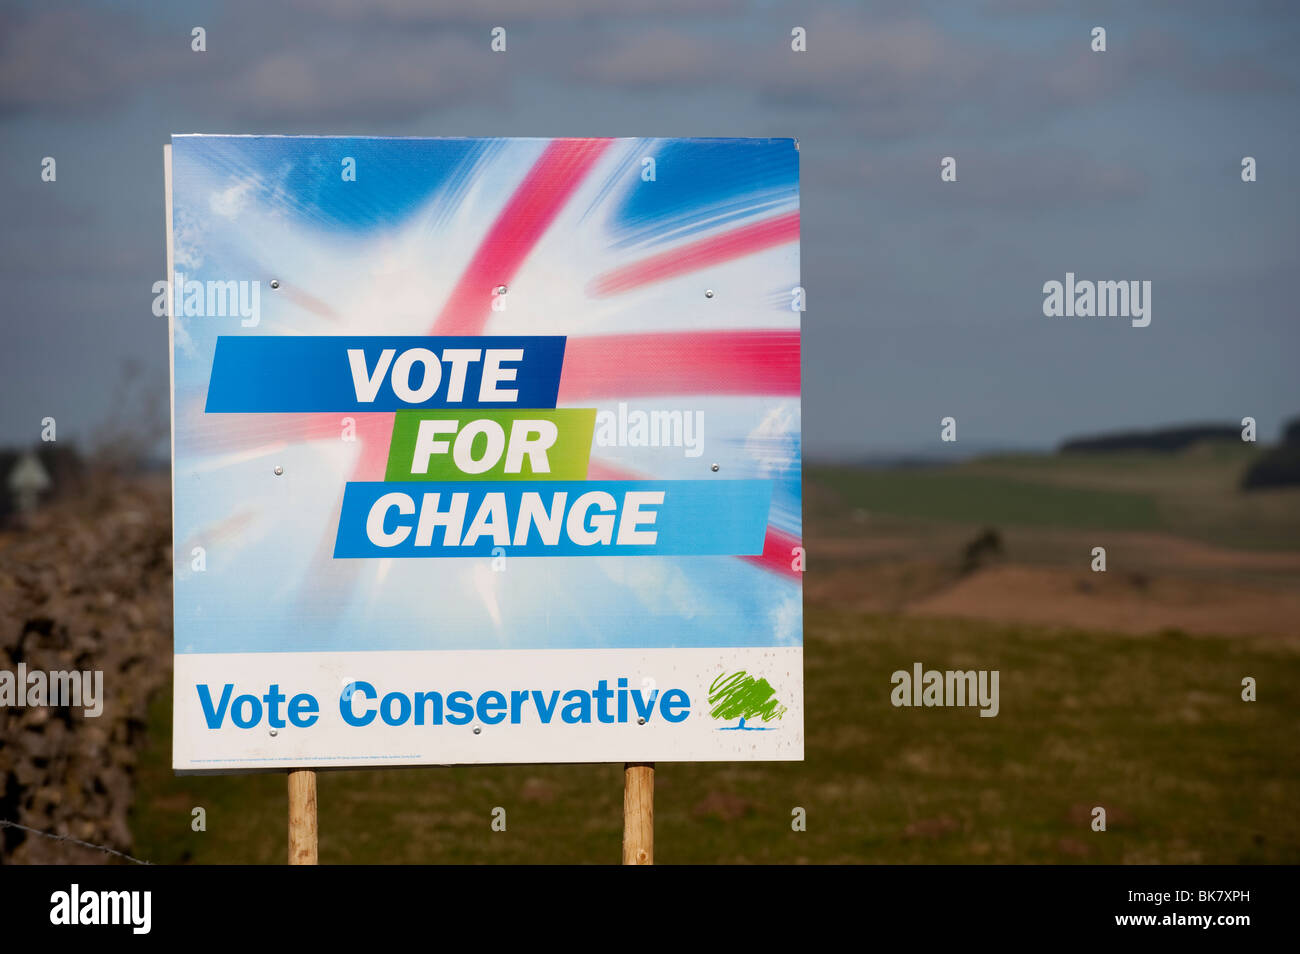 Vote Conservative sign in countryside, Election 2010 - Stock Image